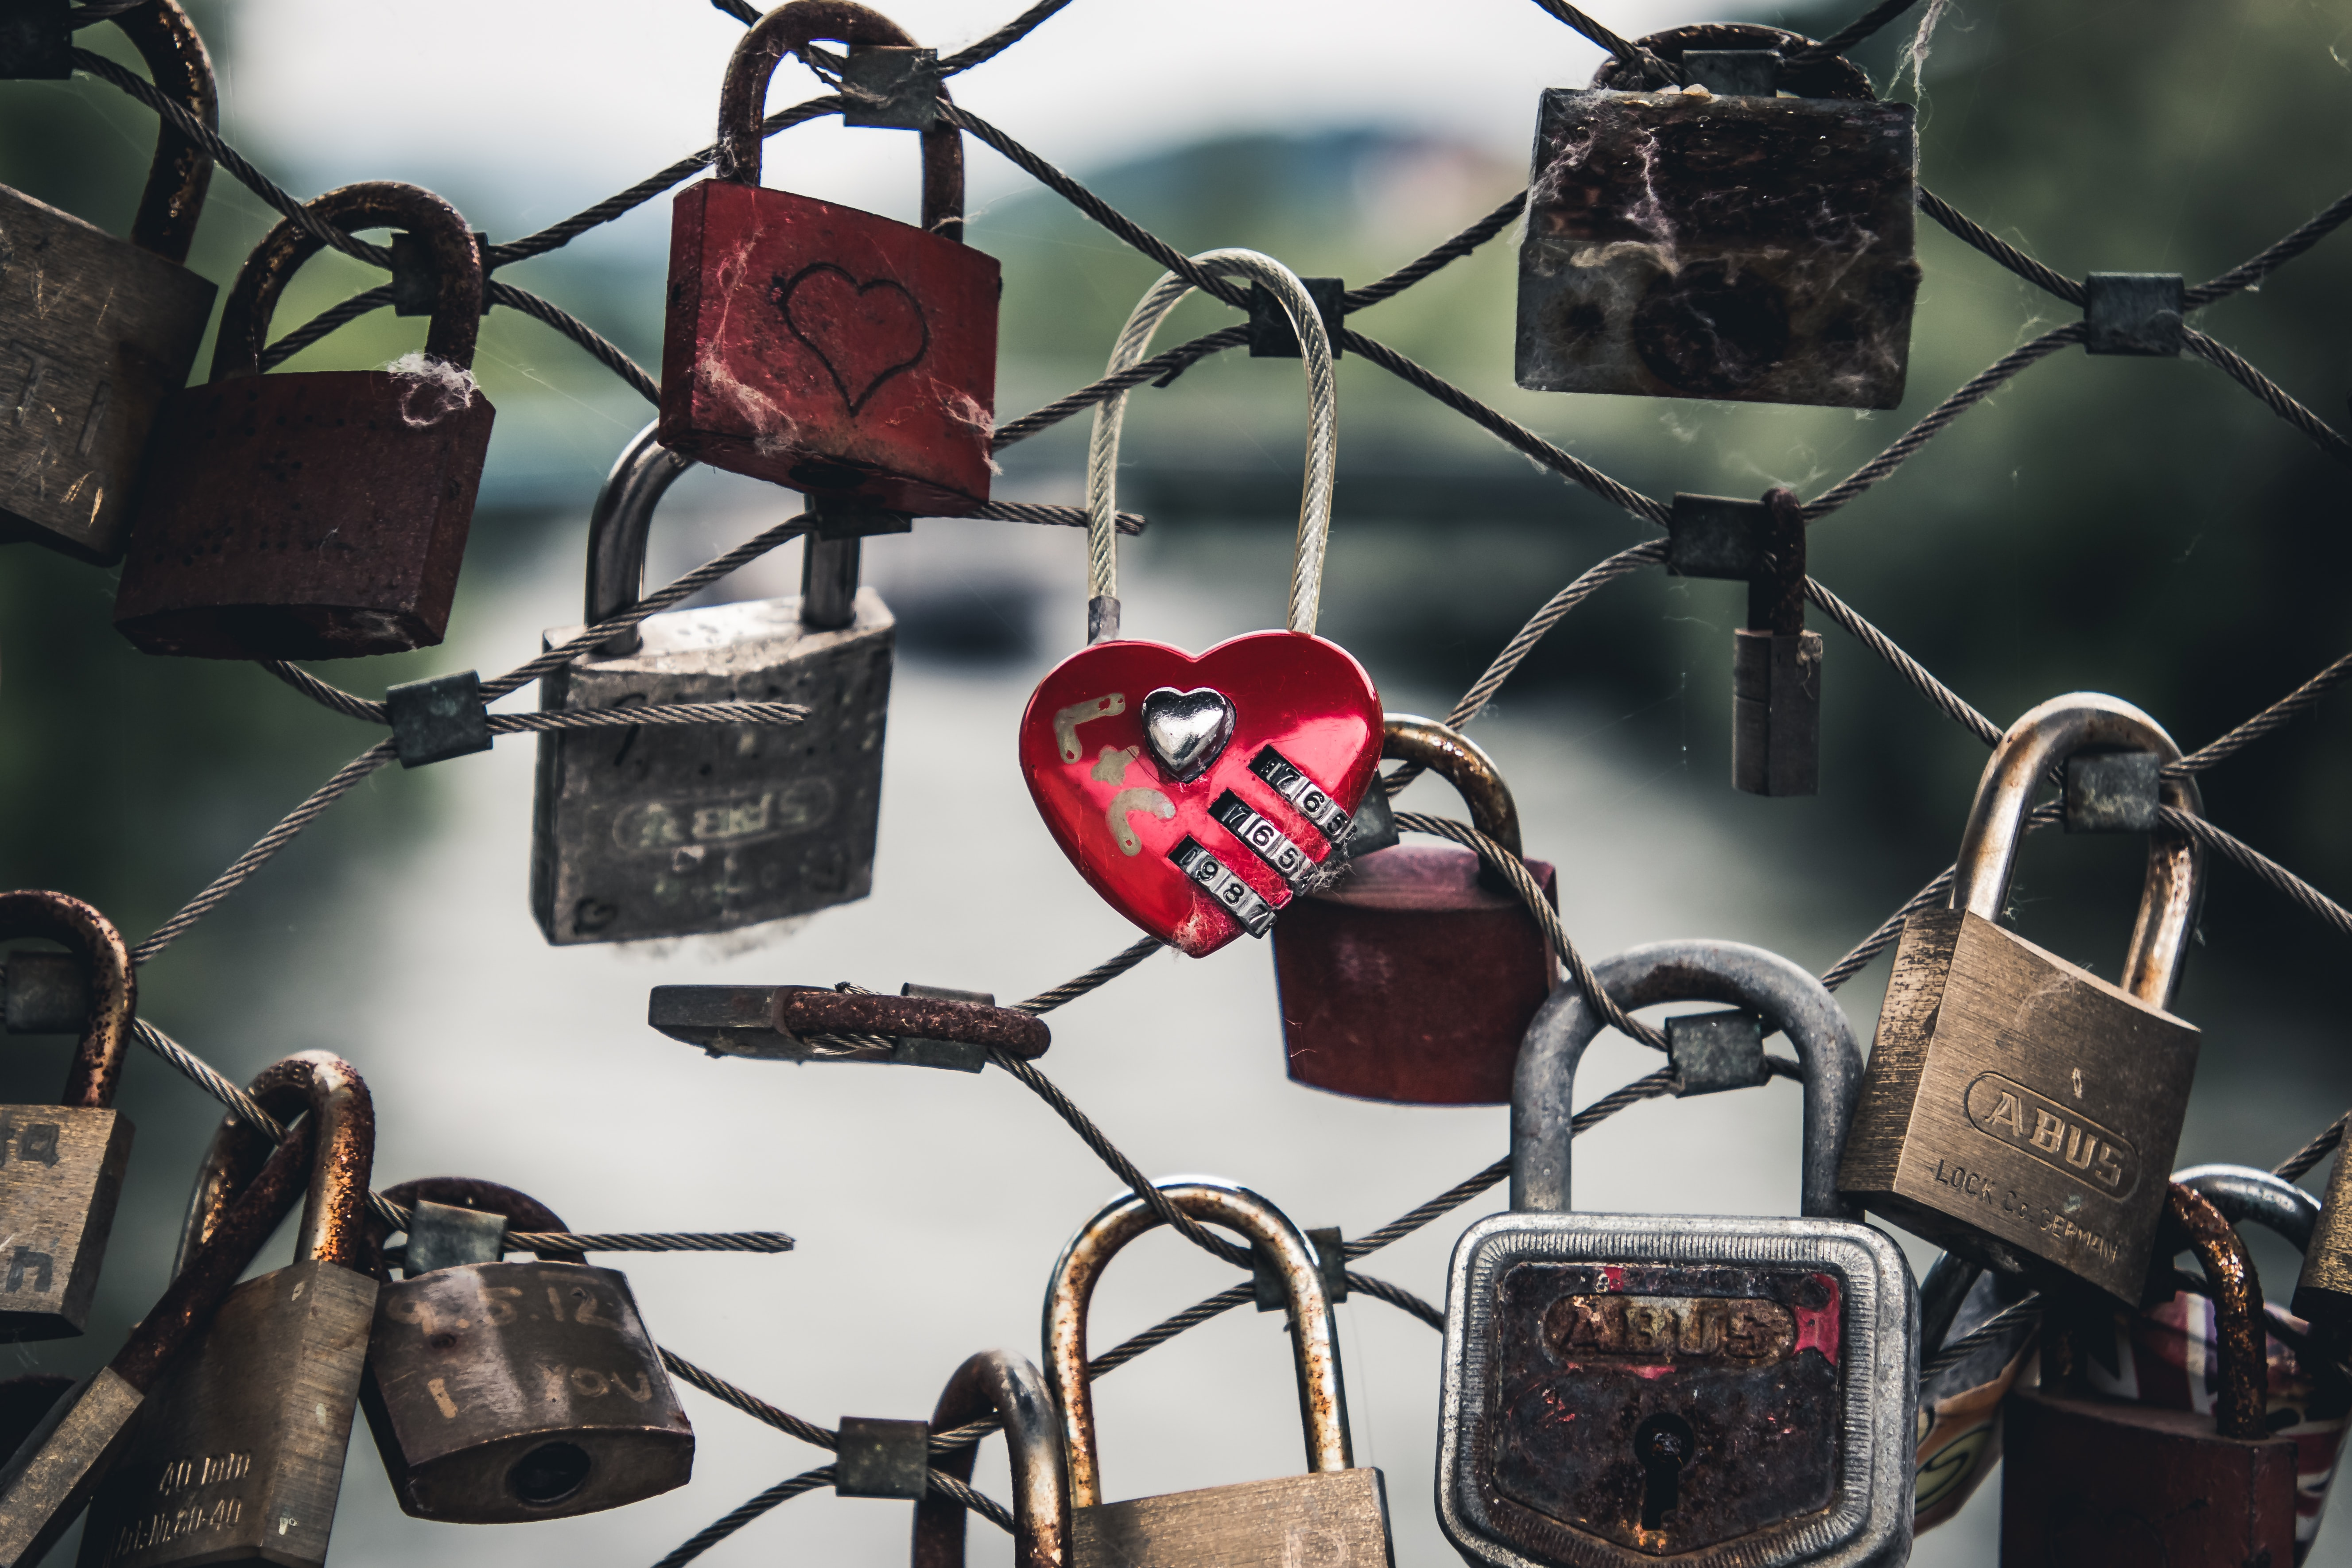 Locks at Love Bridge in Moscow - Visit Moscow in 2 Days